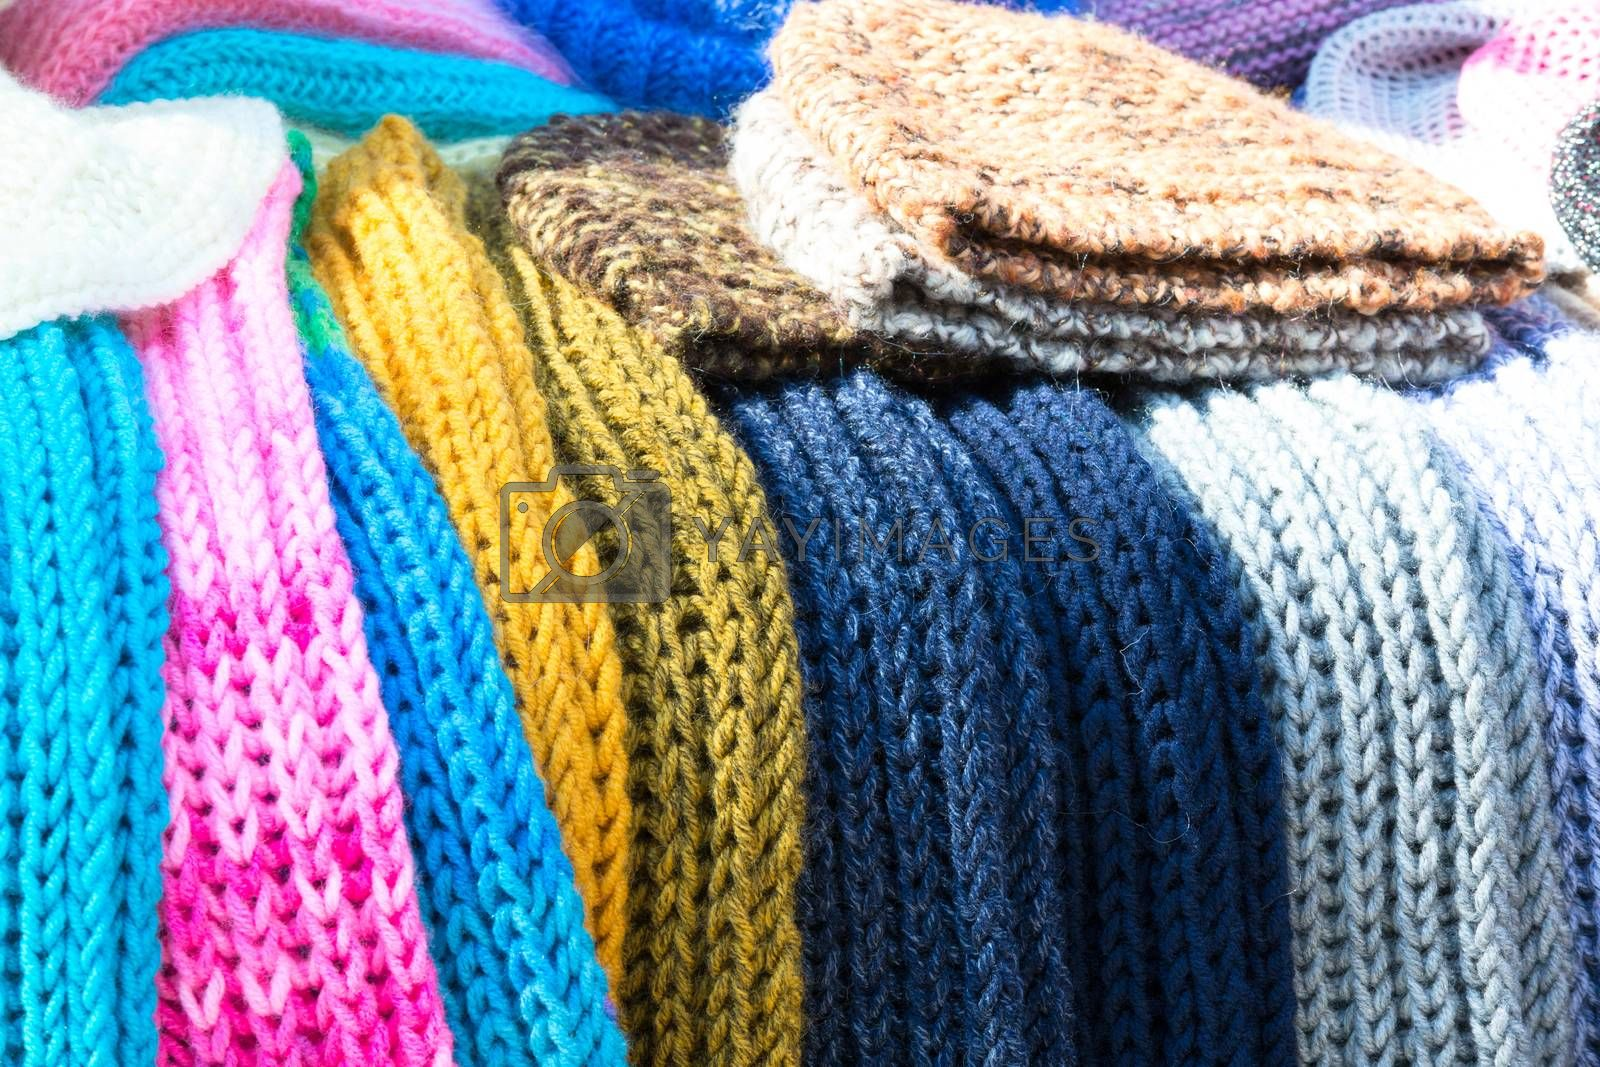 Knitted scarves and hats